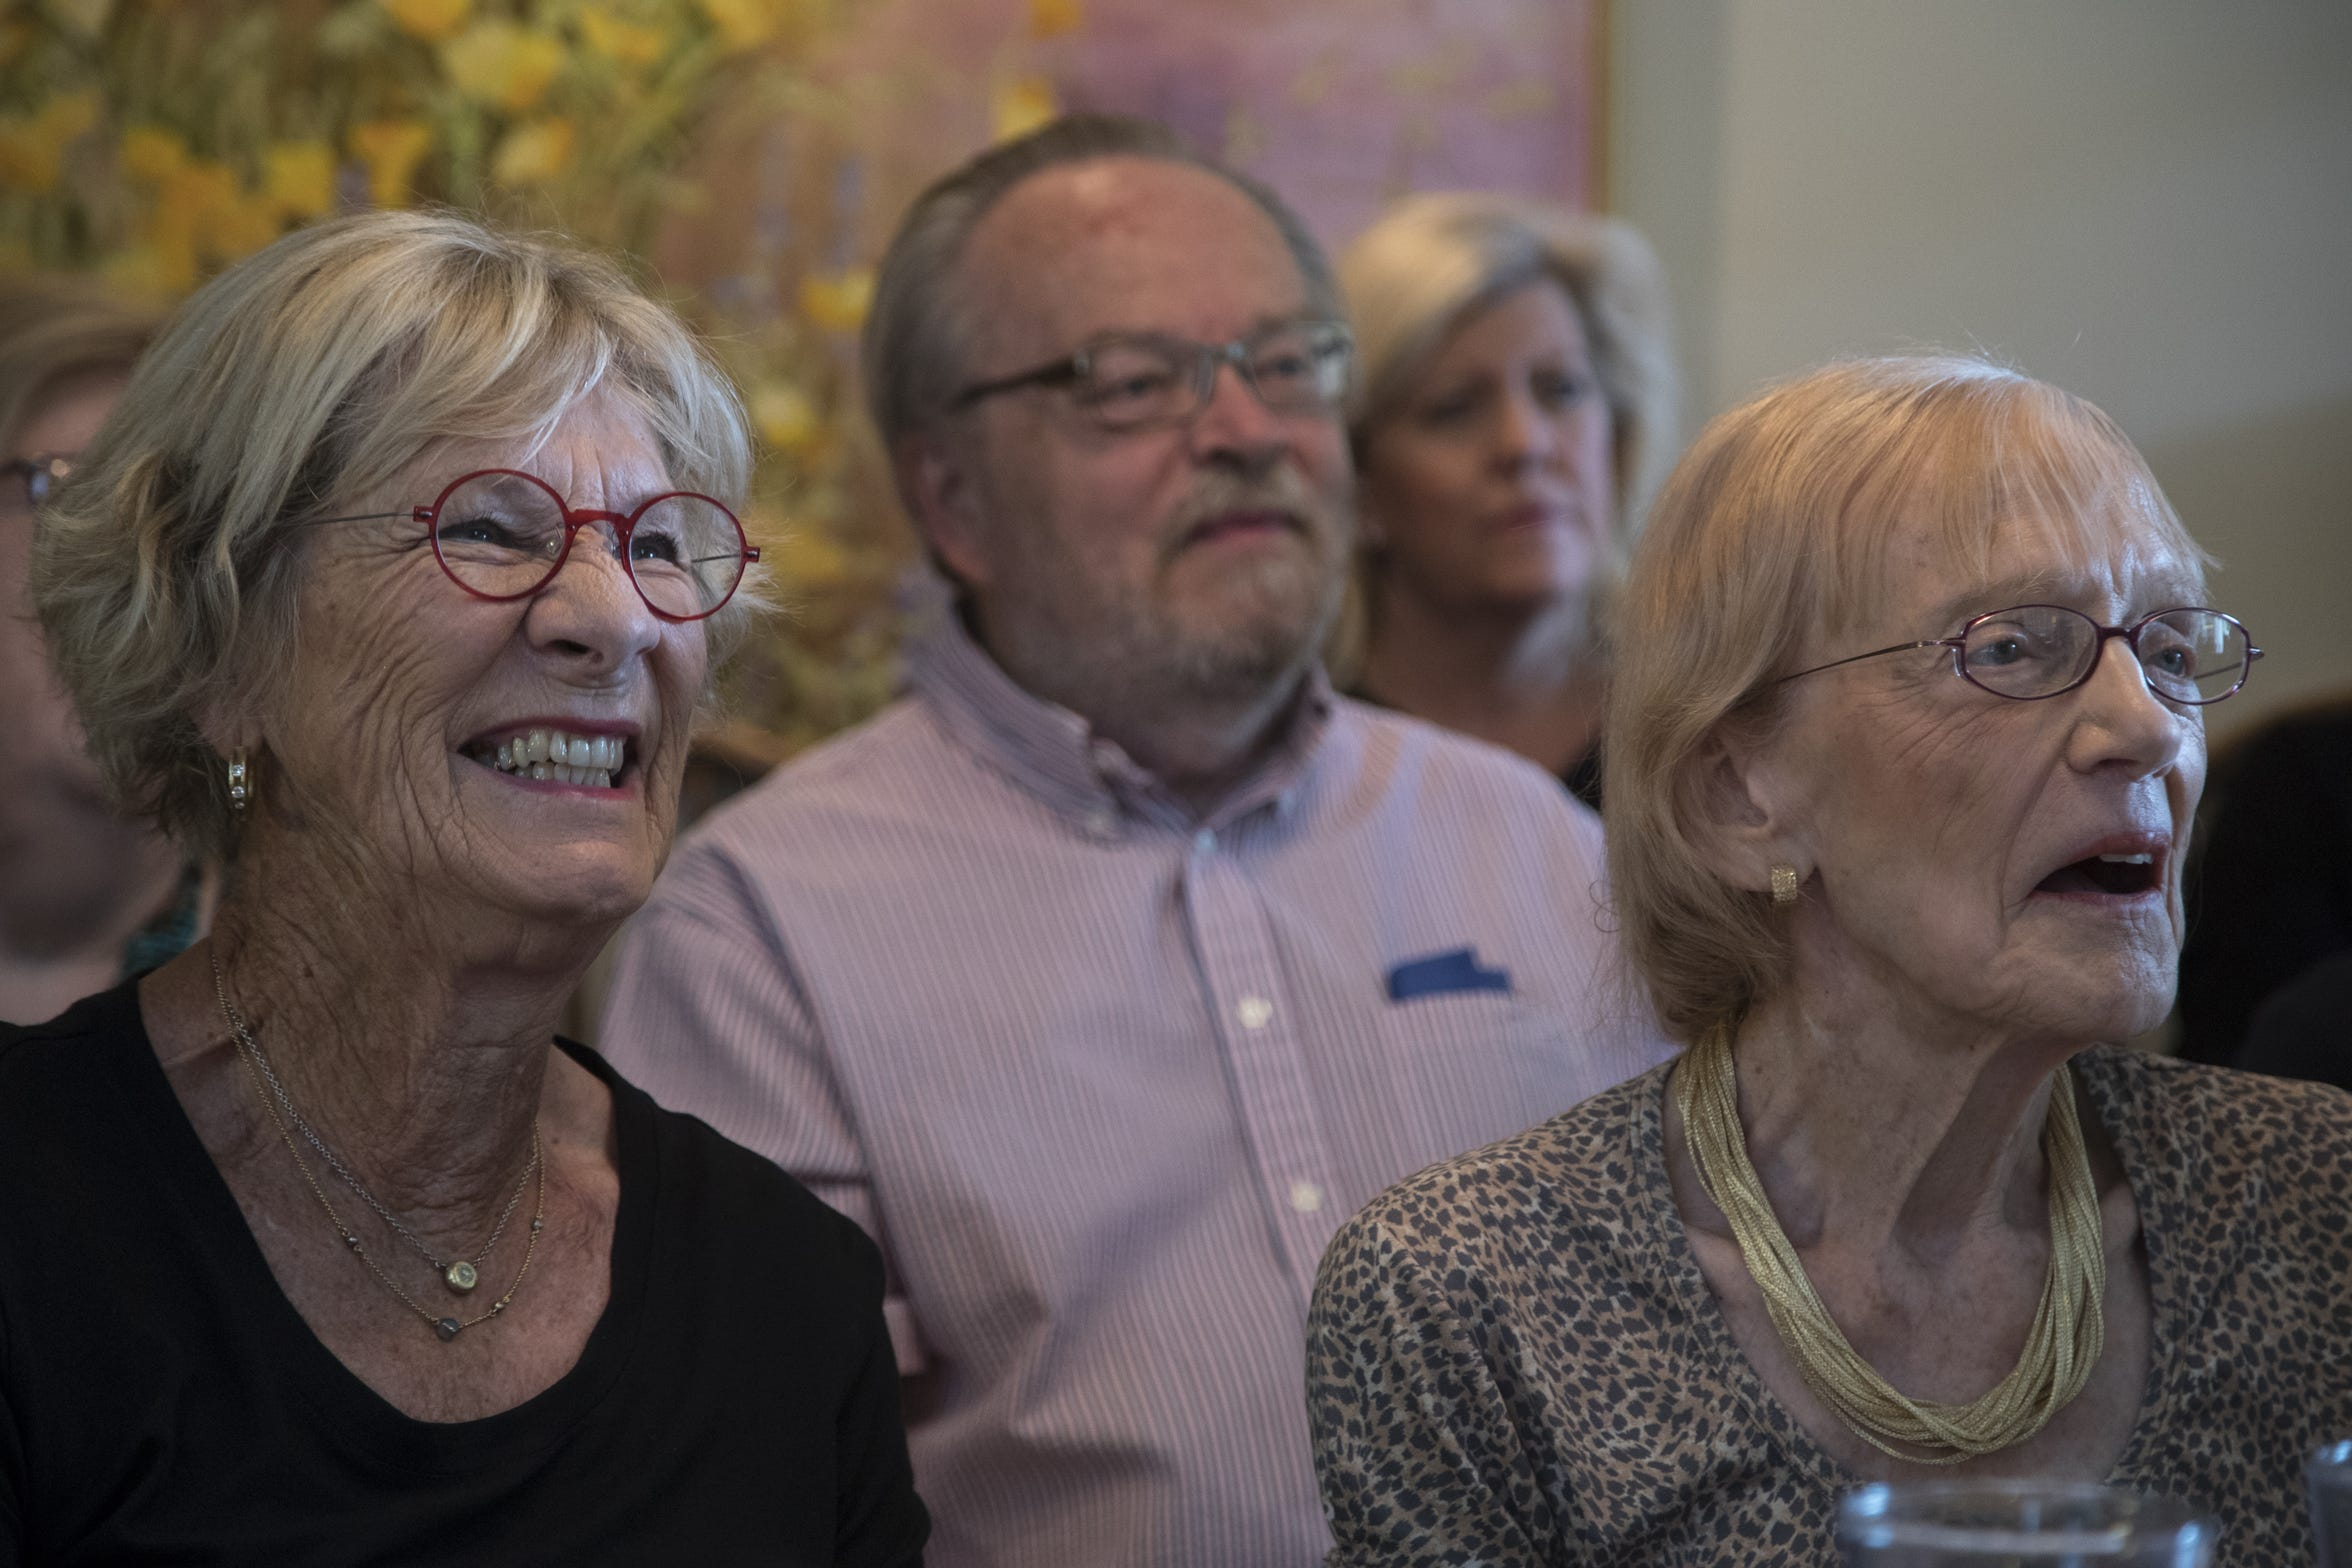 Agneta Hansson (left) and Lucy Lorenzen (right) watch chef Vincent Guerithault during a cooking class, May 7, 2019, at Les Gourmettes Cooking School, 6610 N. Central Ave., Phoenix.